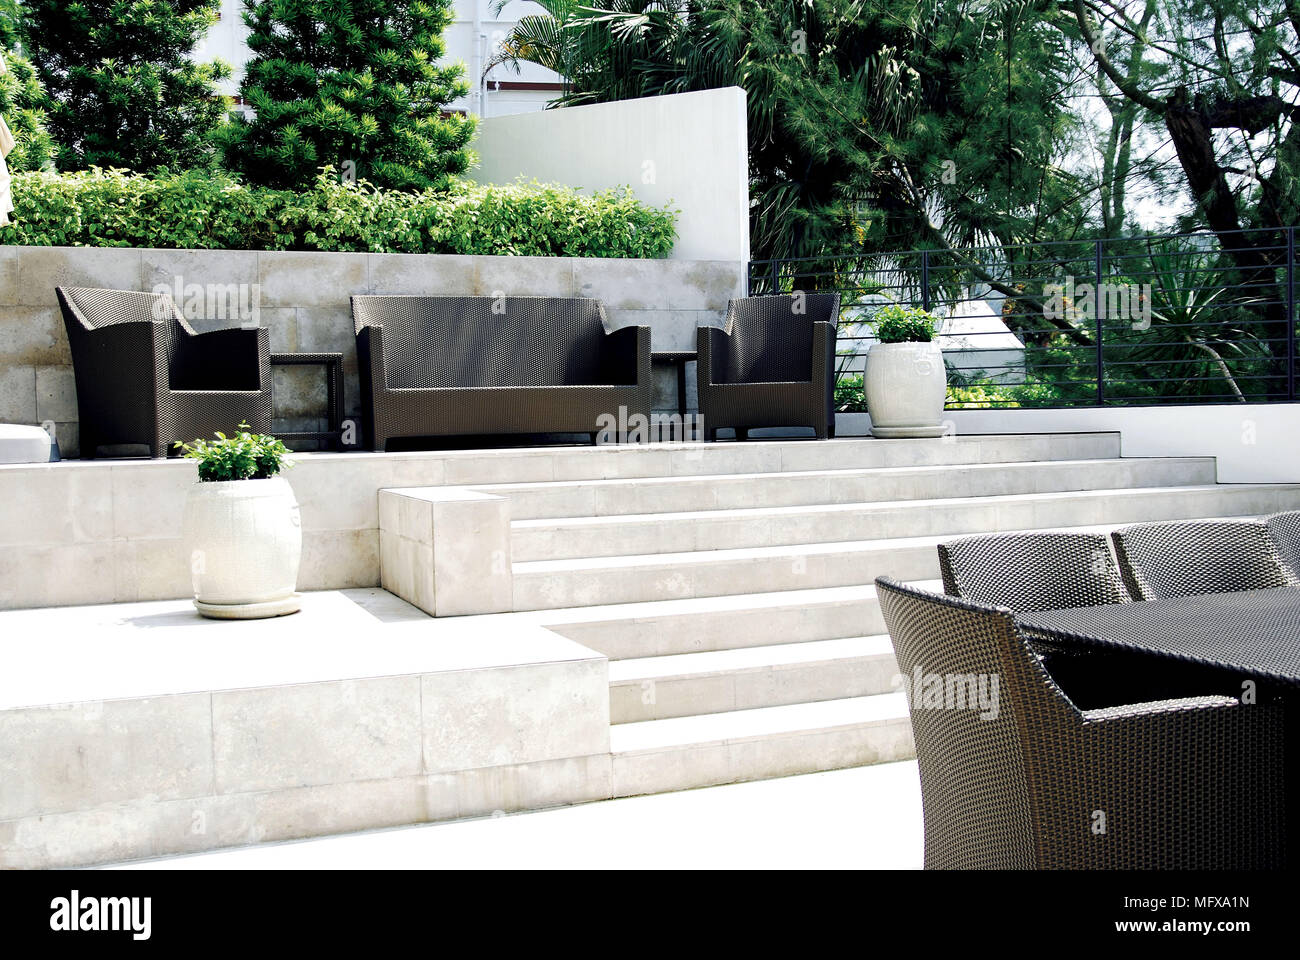 Merveilleux Seating On Split Level Paved Patio Area